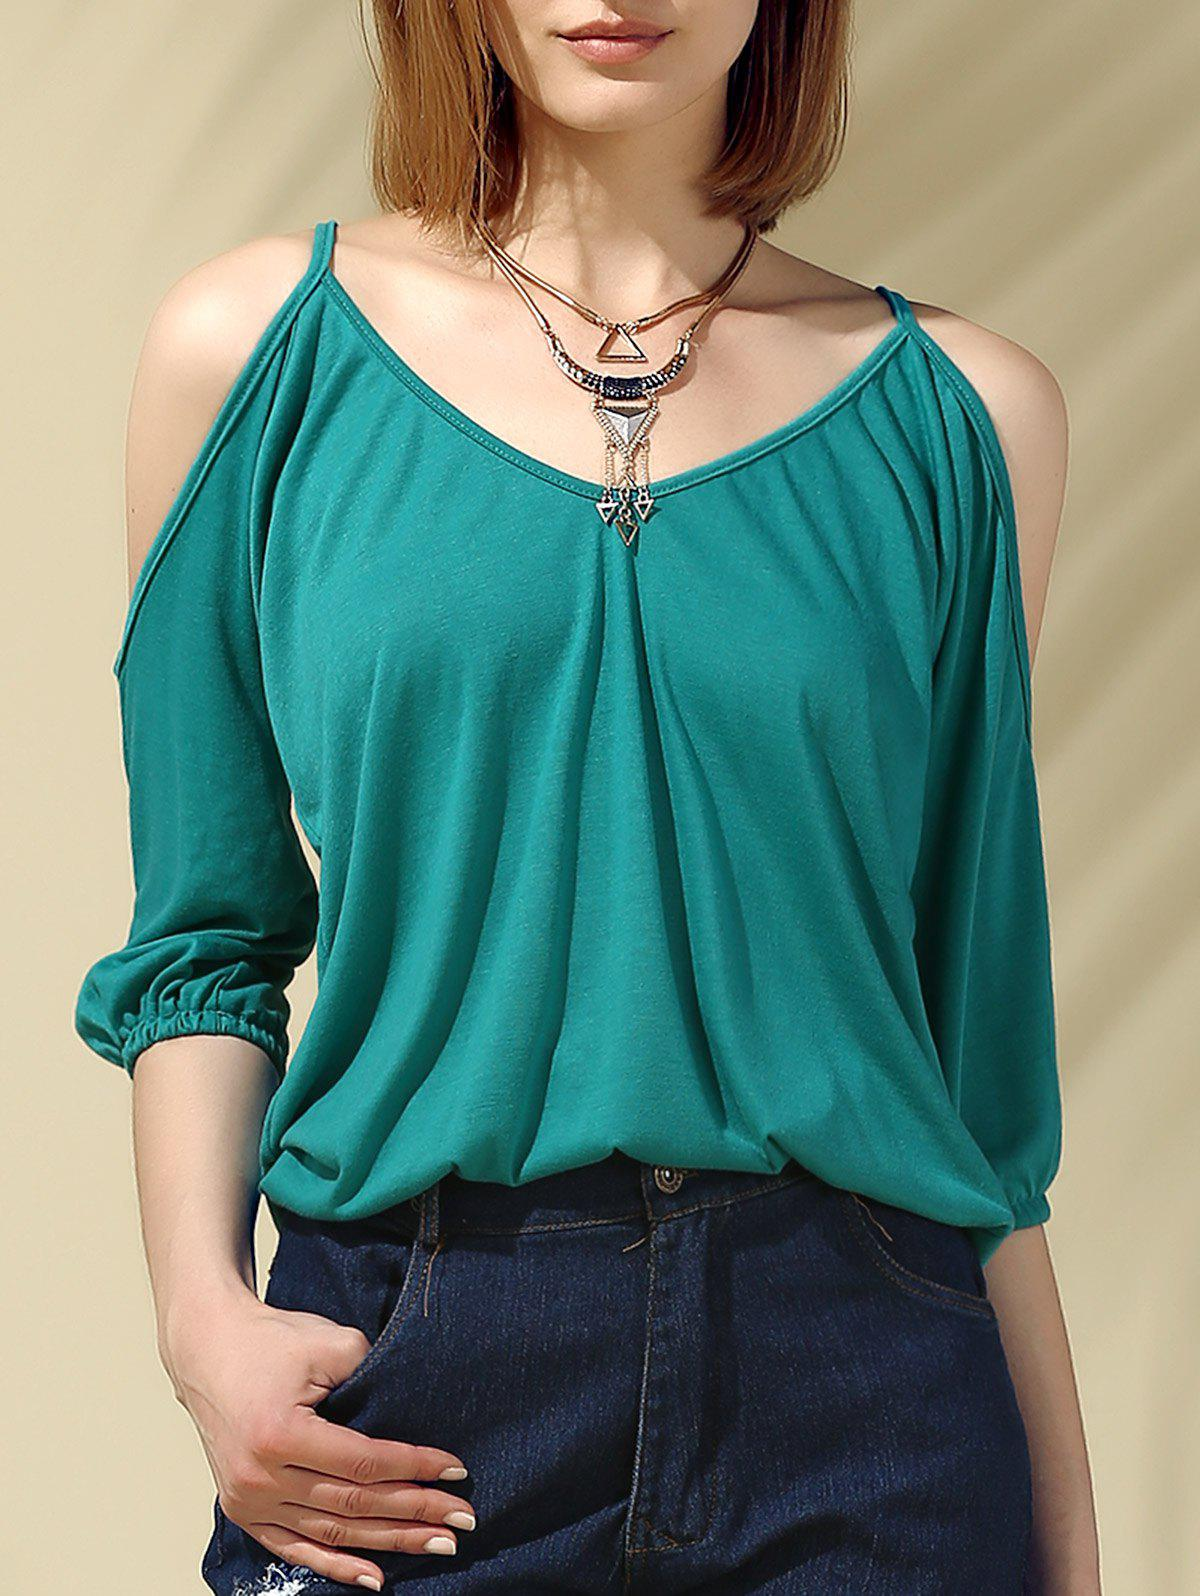 Glamourous Women's Plunging Neck Cold Shoulder 3/4 Sleeves Blouse - CYAN M